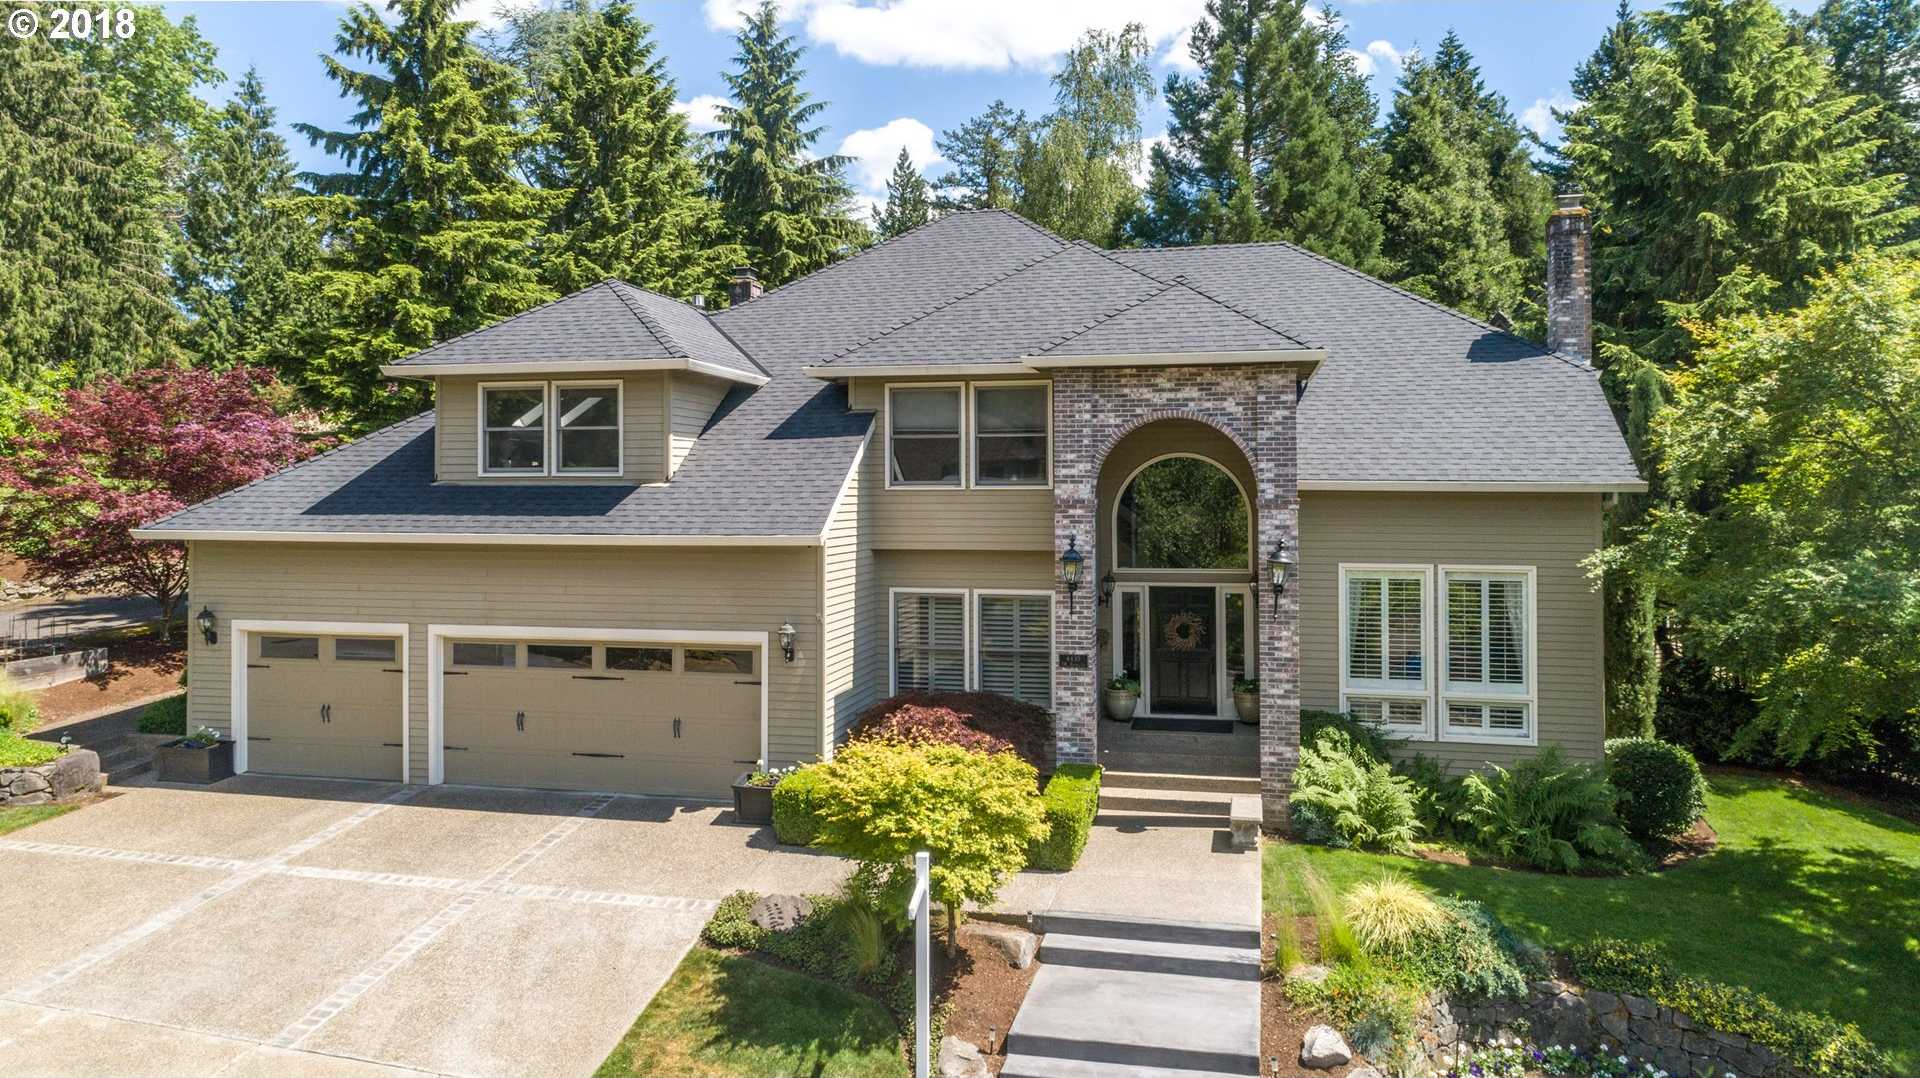 $949,900 - 4Br/4Ba -  for Sale in Hamilton Woods, Portland